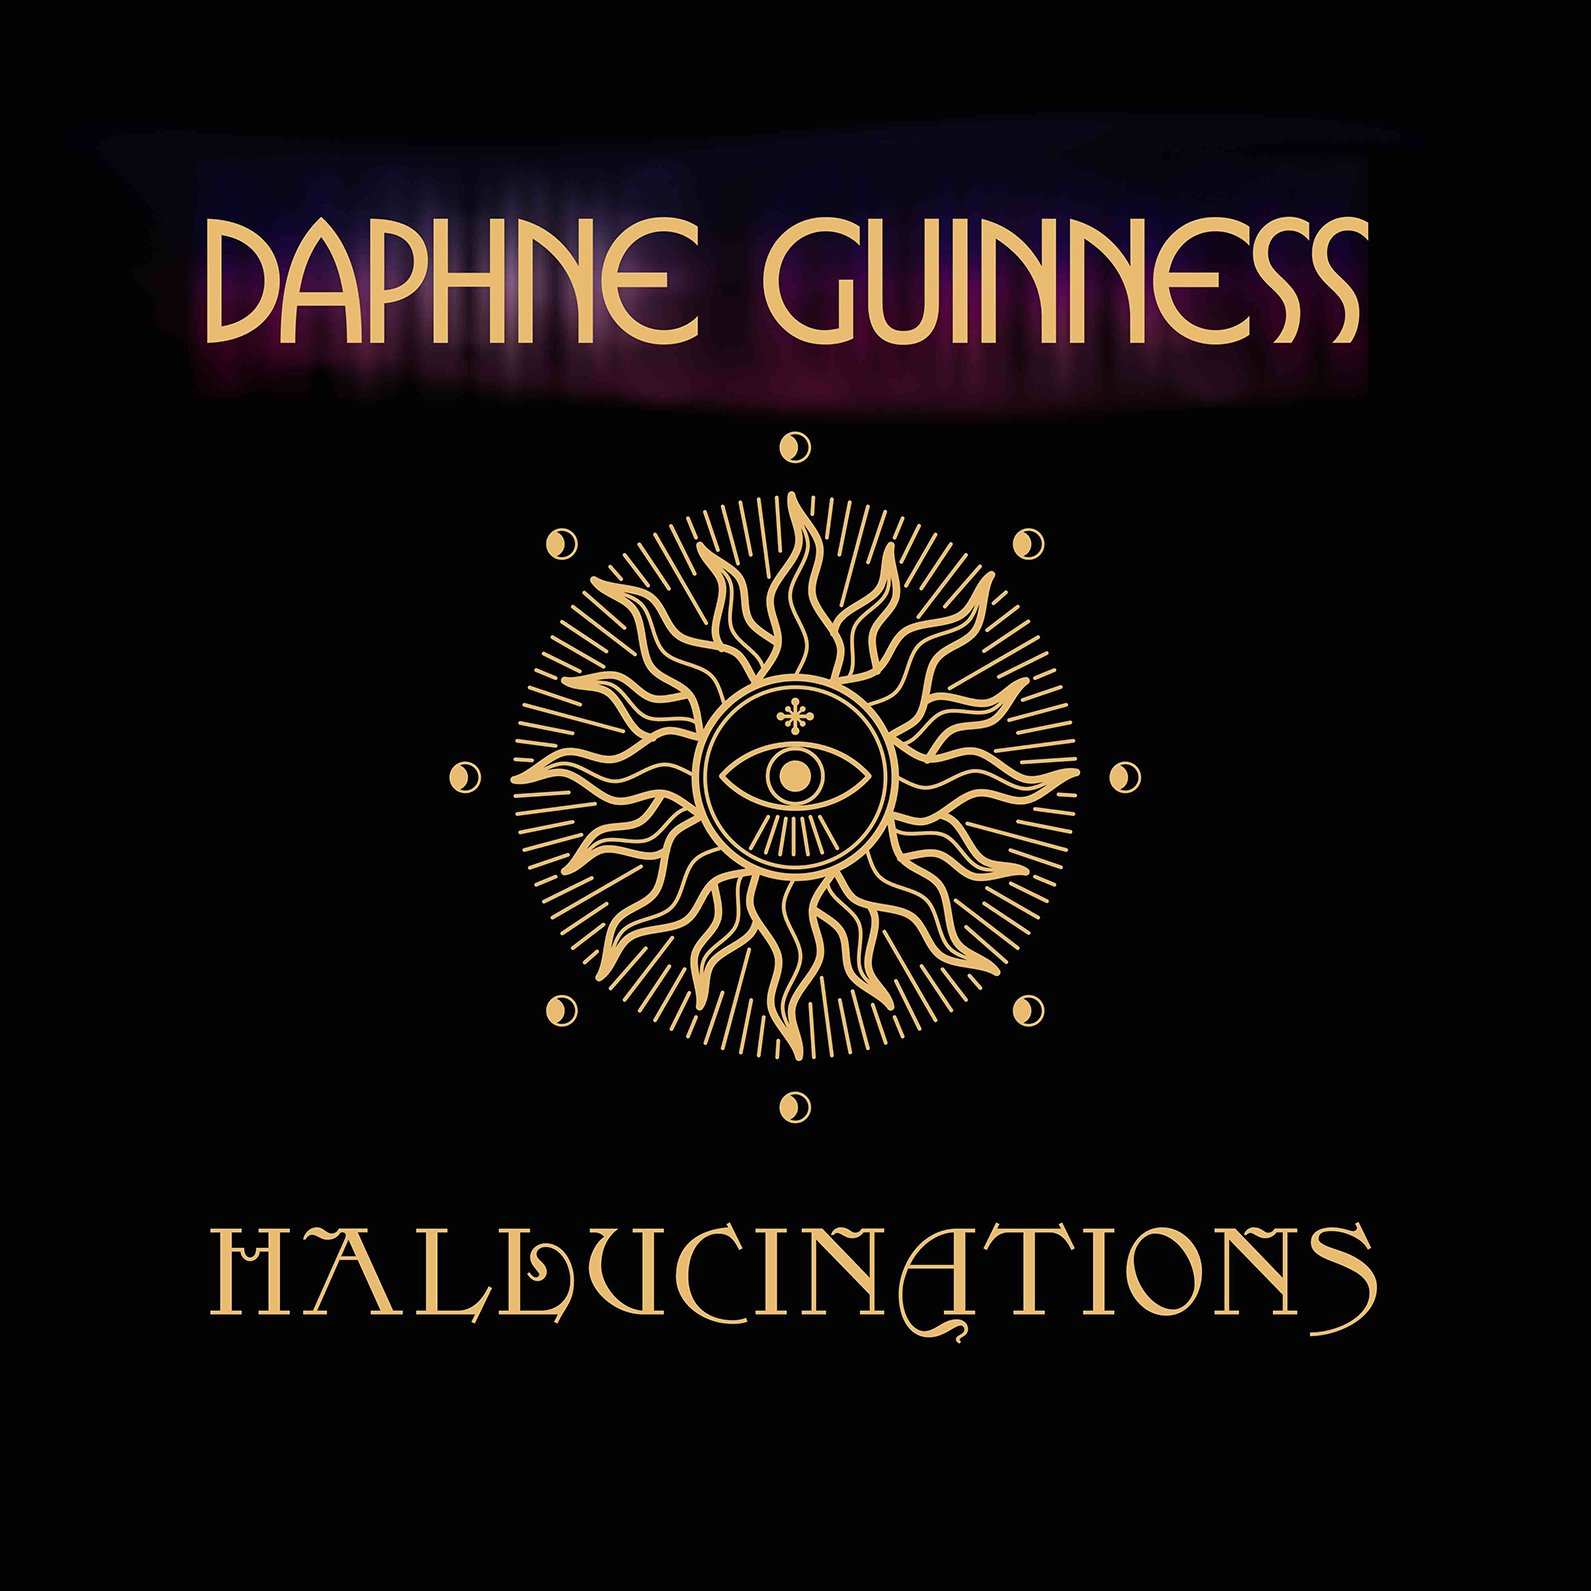 DAPHNE GUINNESS releases a new single, 'Hallucinations' - Listen Now